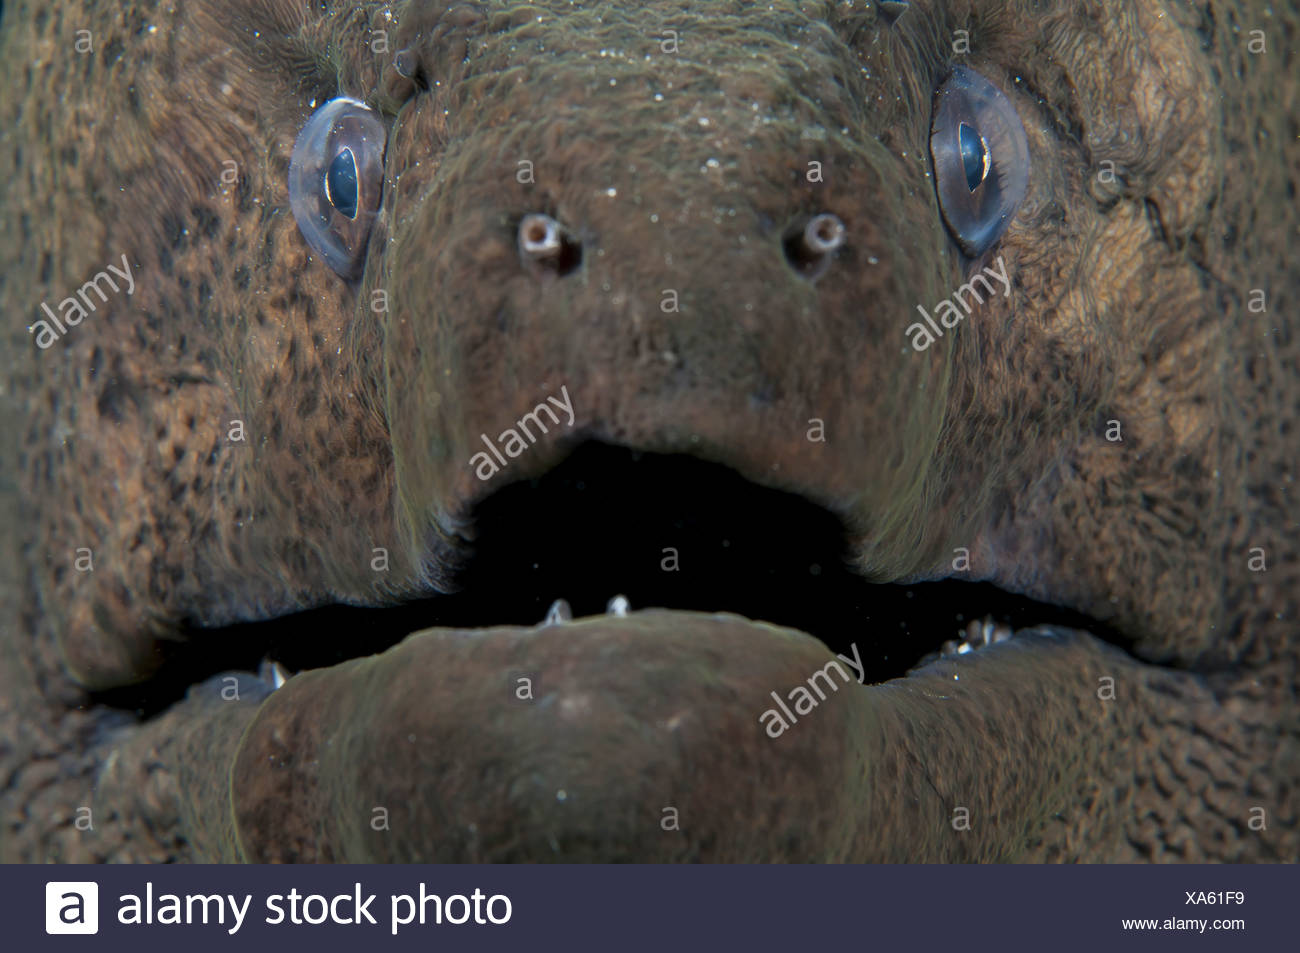 Giant Moray Eel Portrait, Egypt (Gymnothorax javanicus) - Stock Image